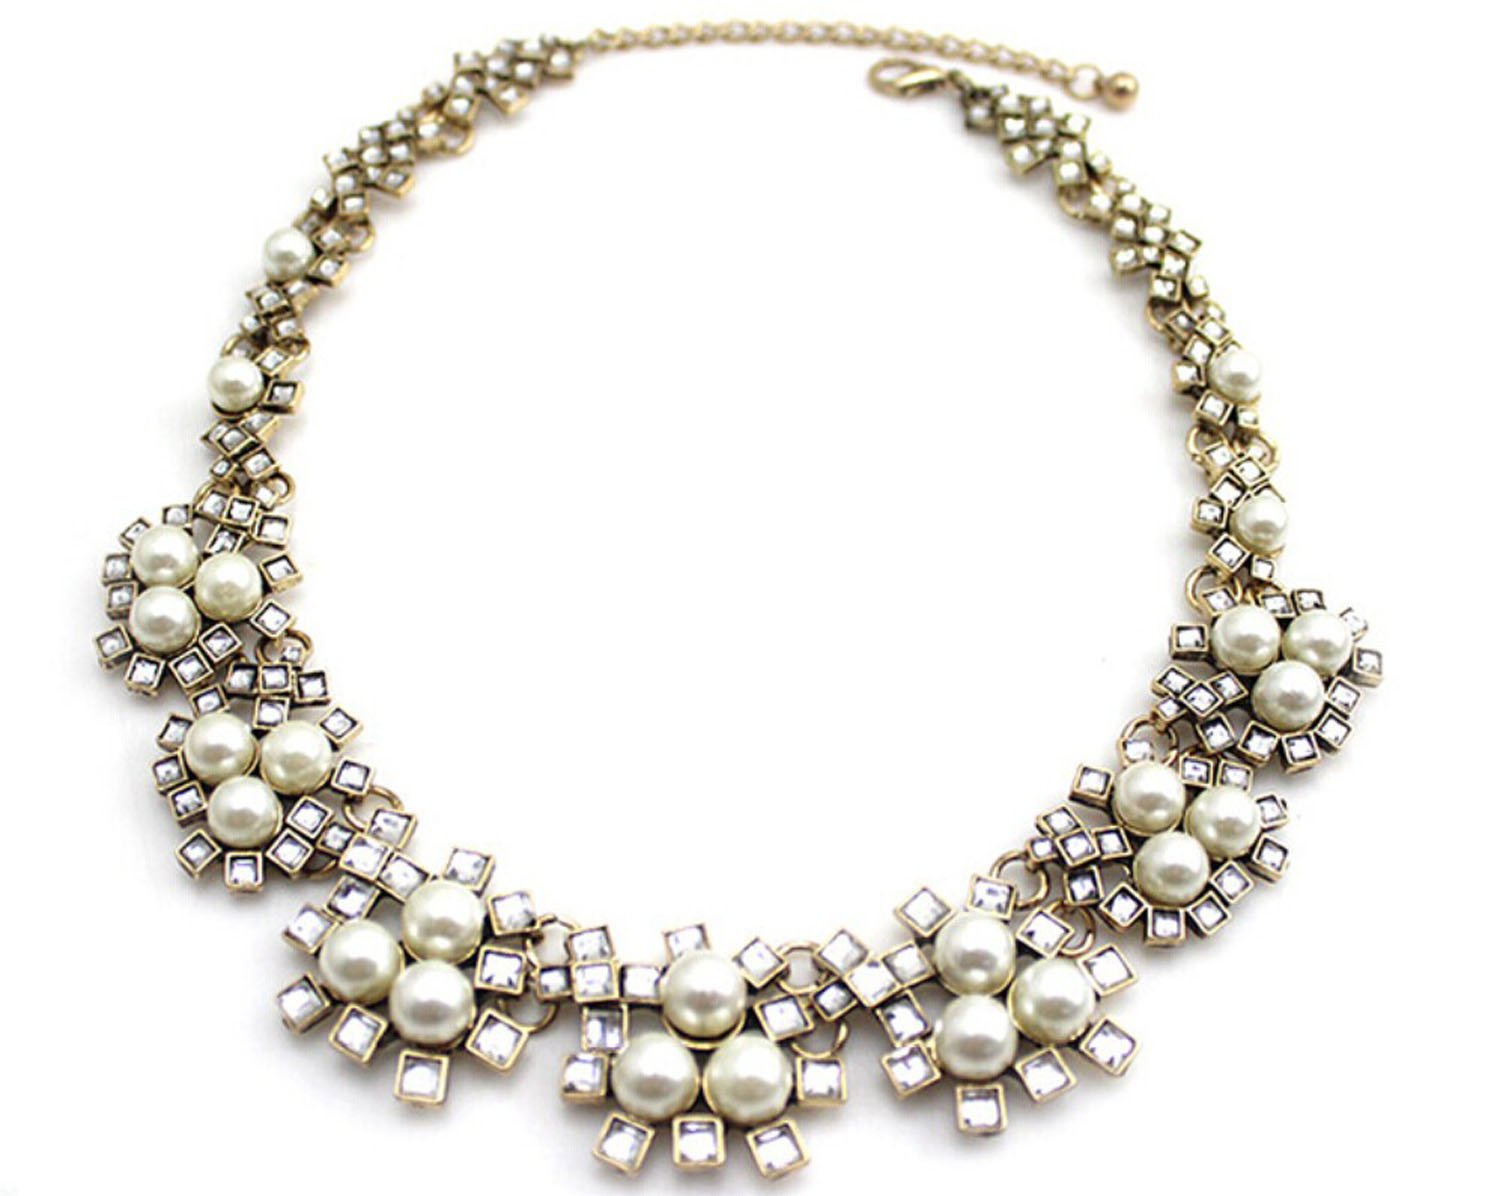 Wiipu wedding pearl necklace crystal necklace(C1502)